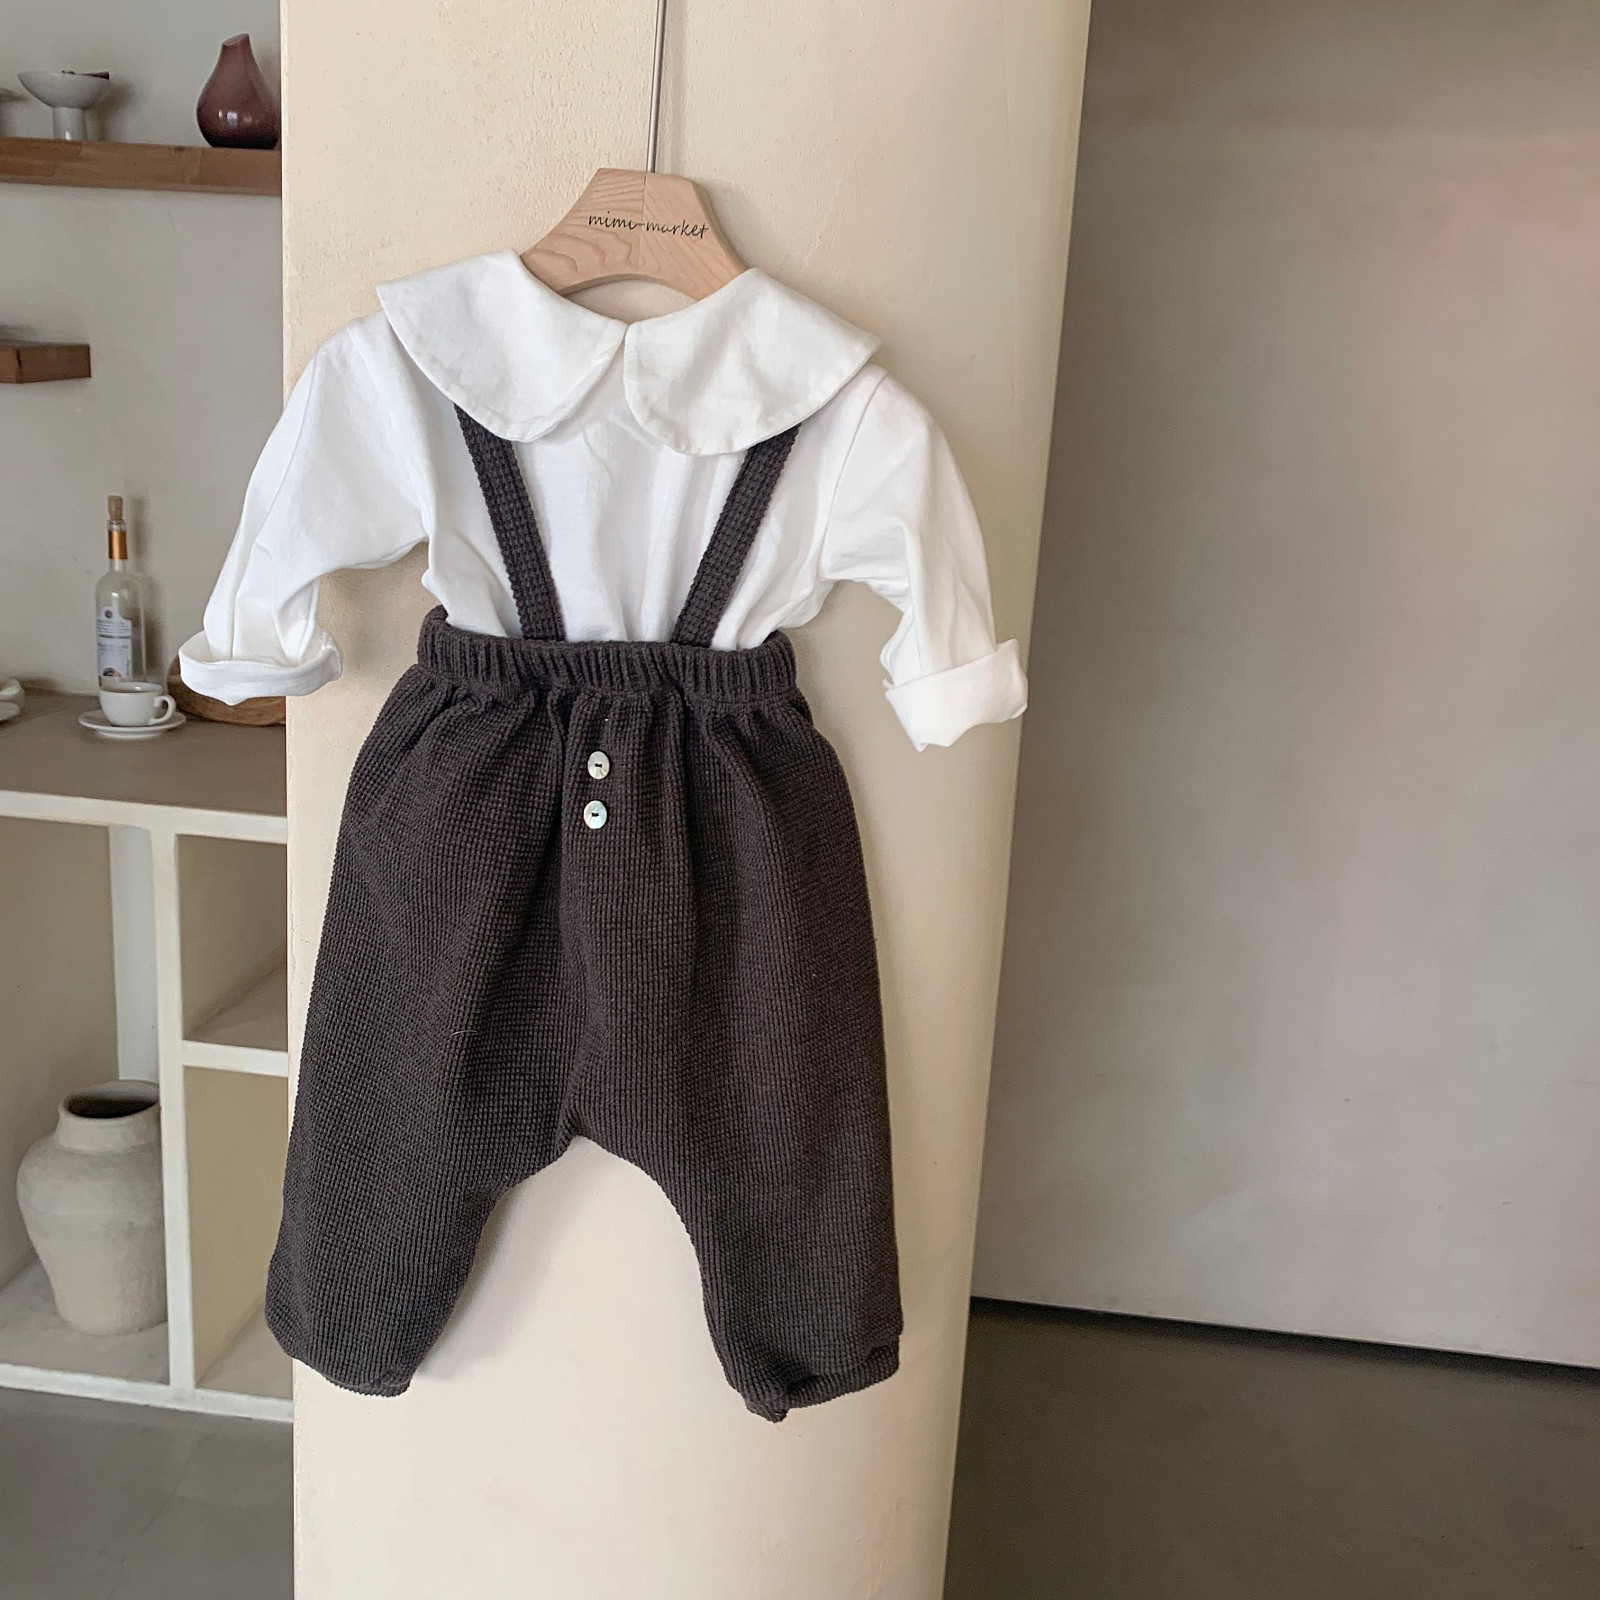 MIMI MARKET - Korean Children Fashion - #Kfashion4kids - Cookie Suspender Pants - 5